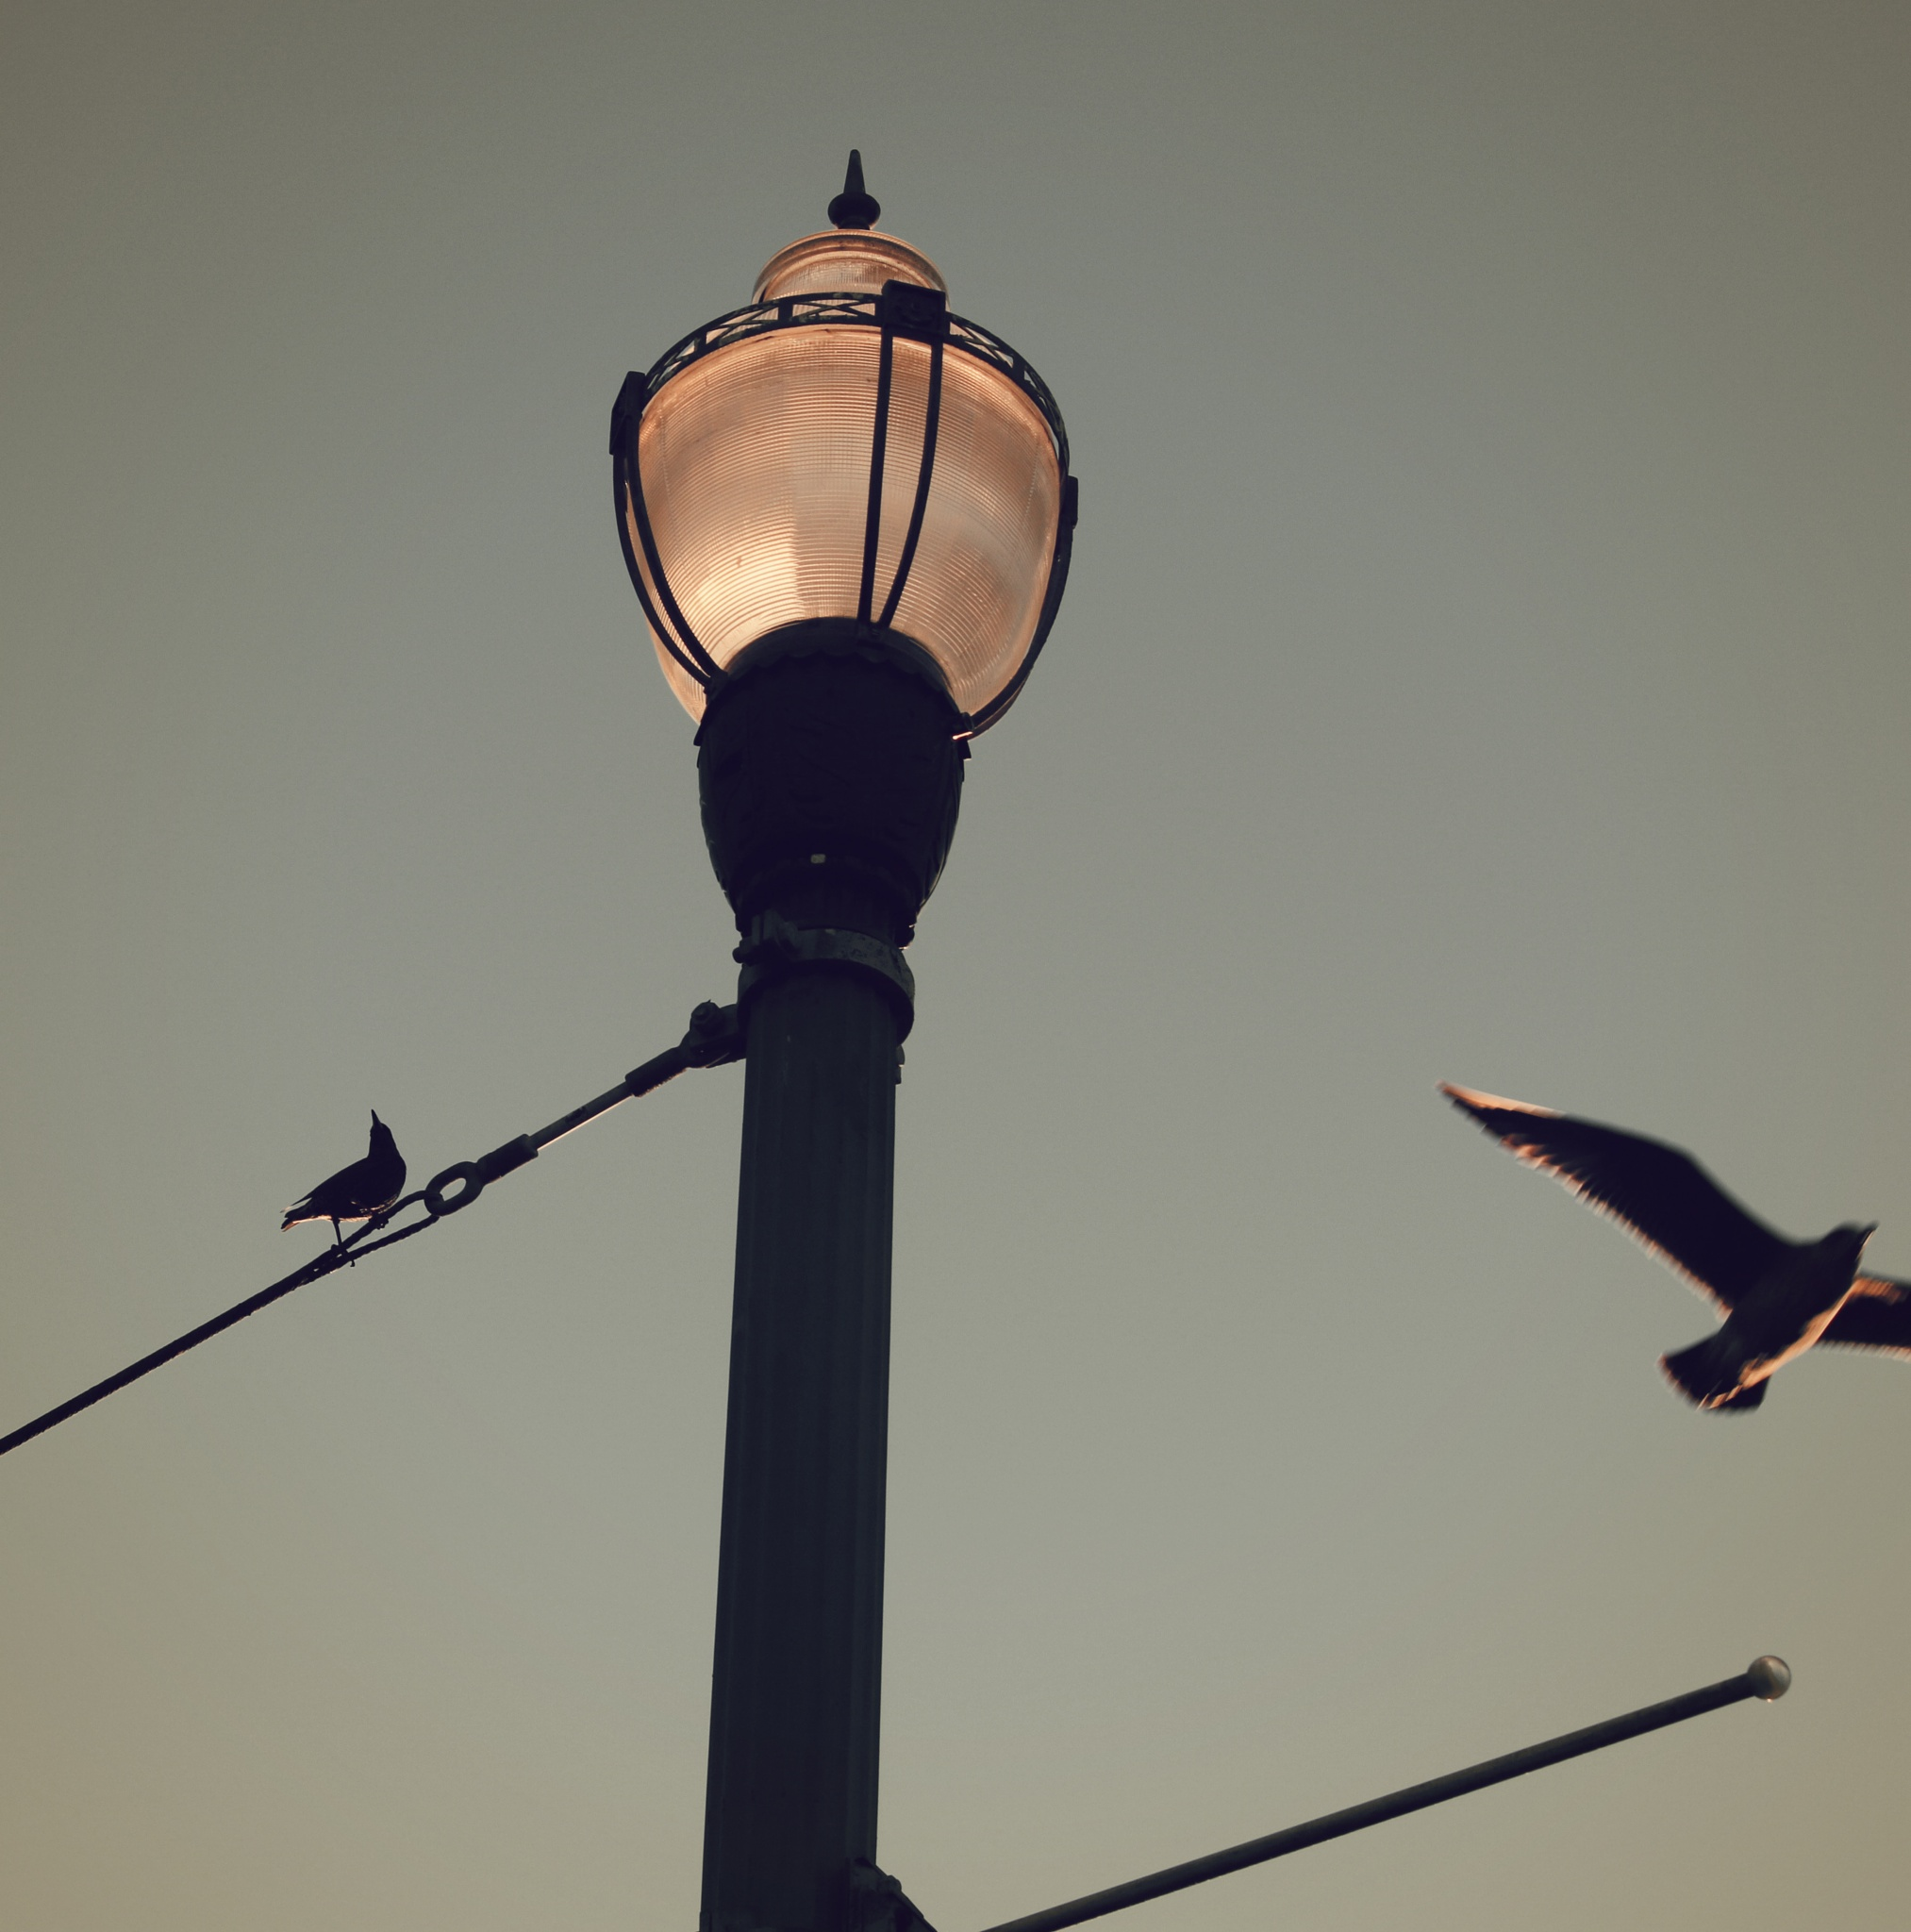 Two Birds and a Light by PaulWhiteman